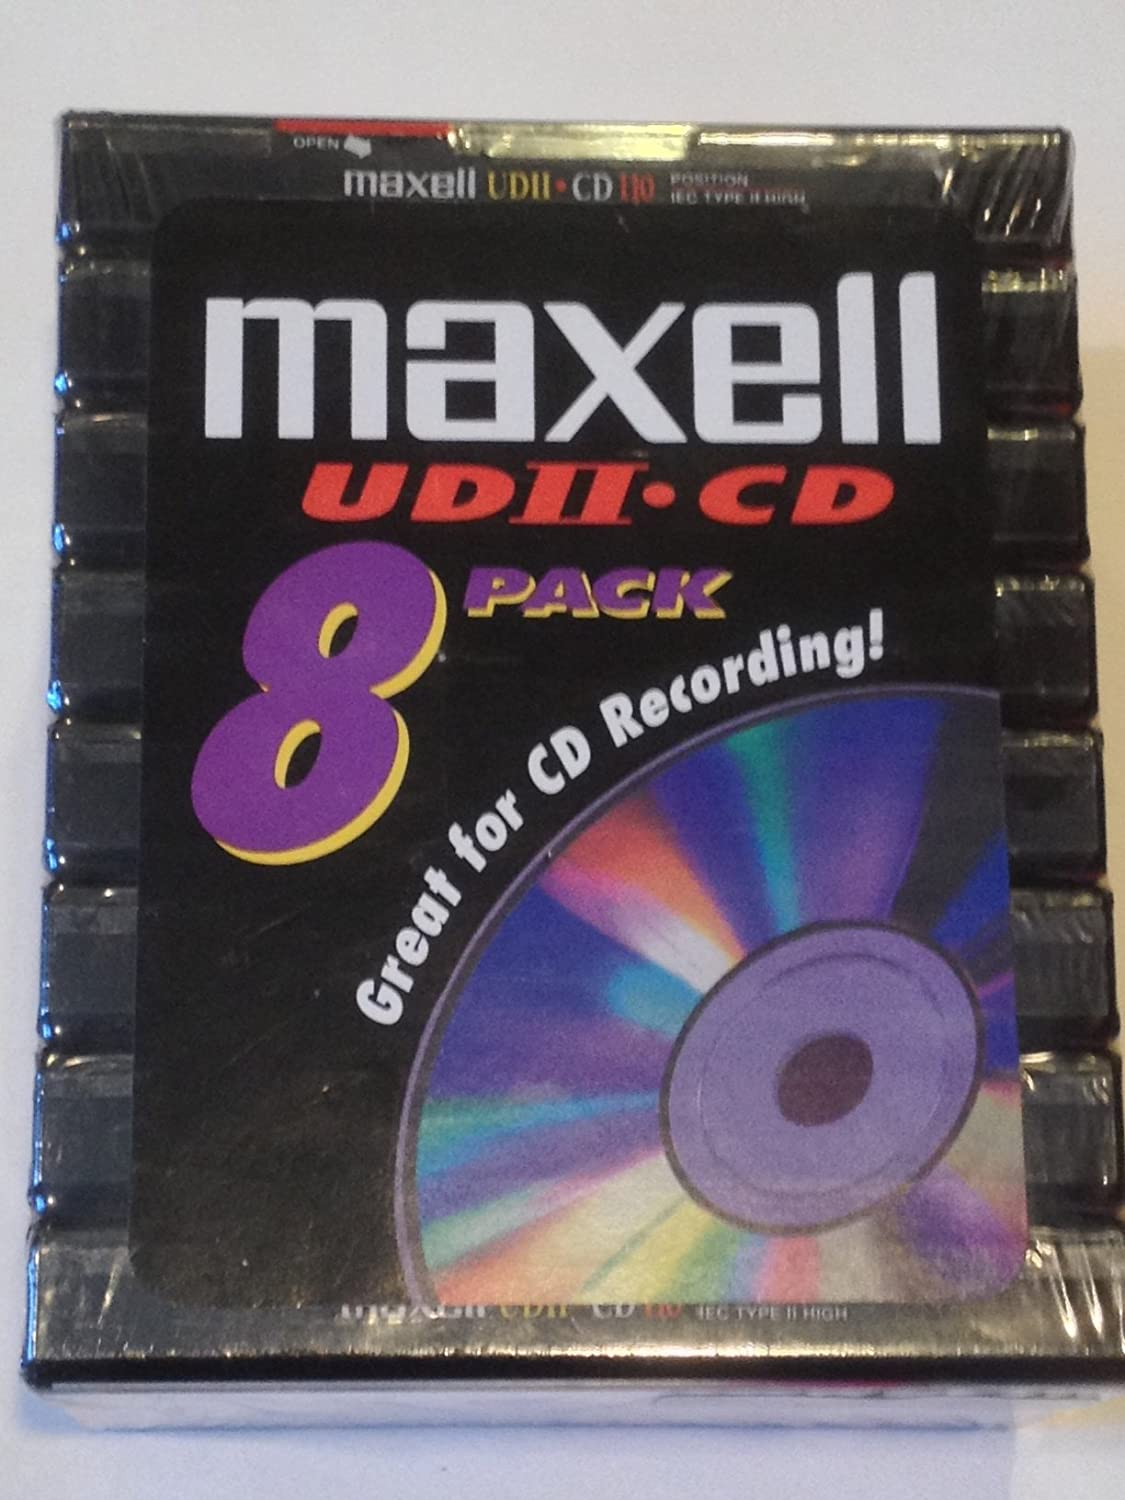 Maxell UDII-CD 110 8 Pack Audio Cassettes High Bias